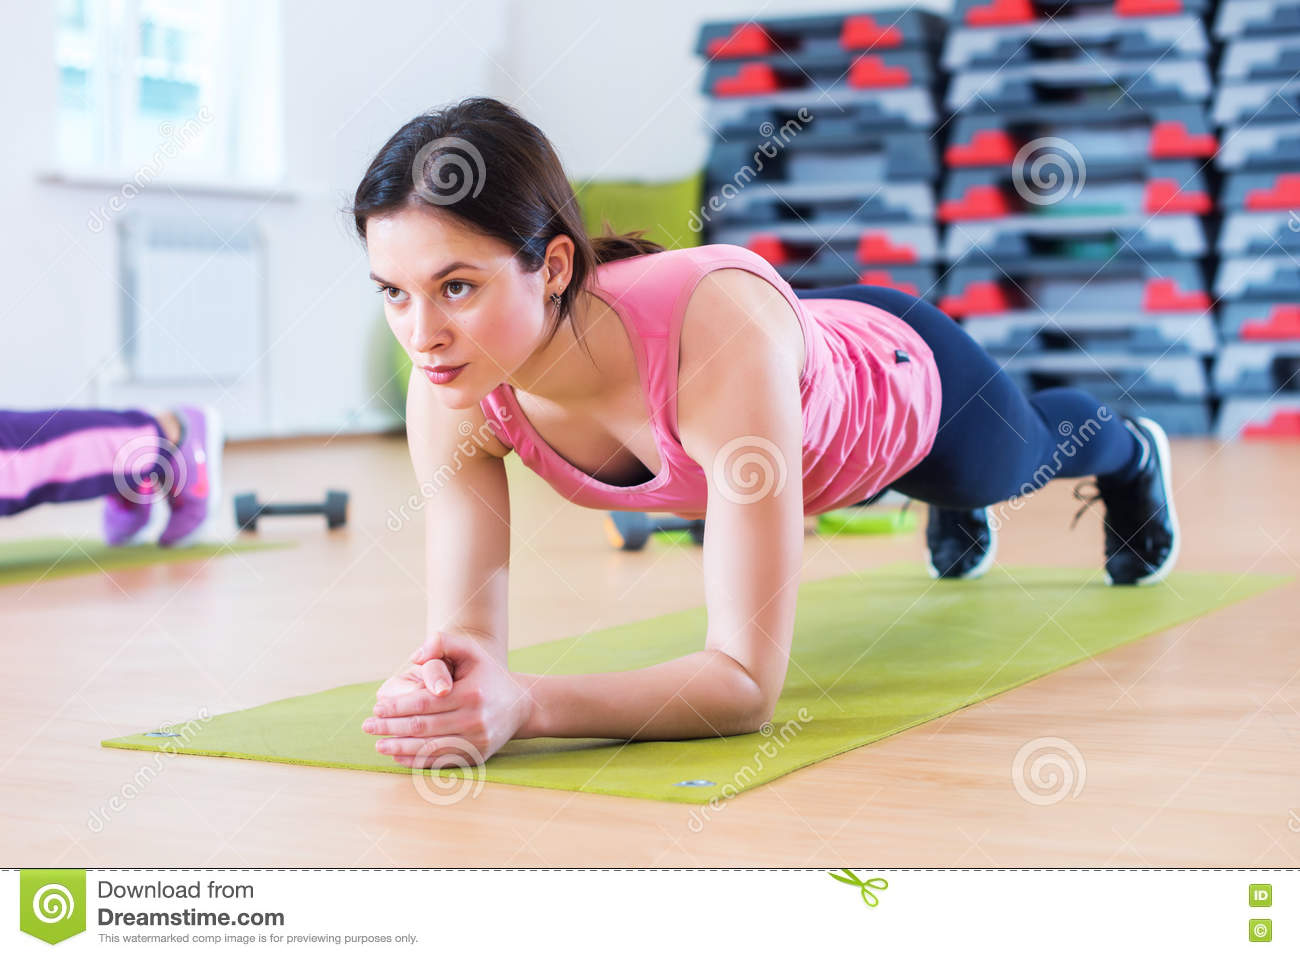 Fit sportive woman doing plank core exercise training back and press muscles concept gym sport sportsman fitness workout